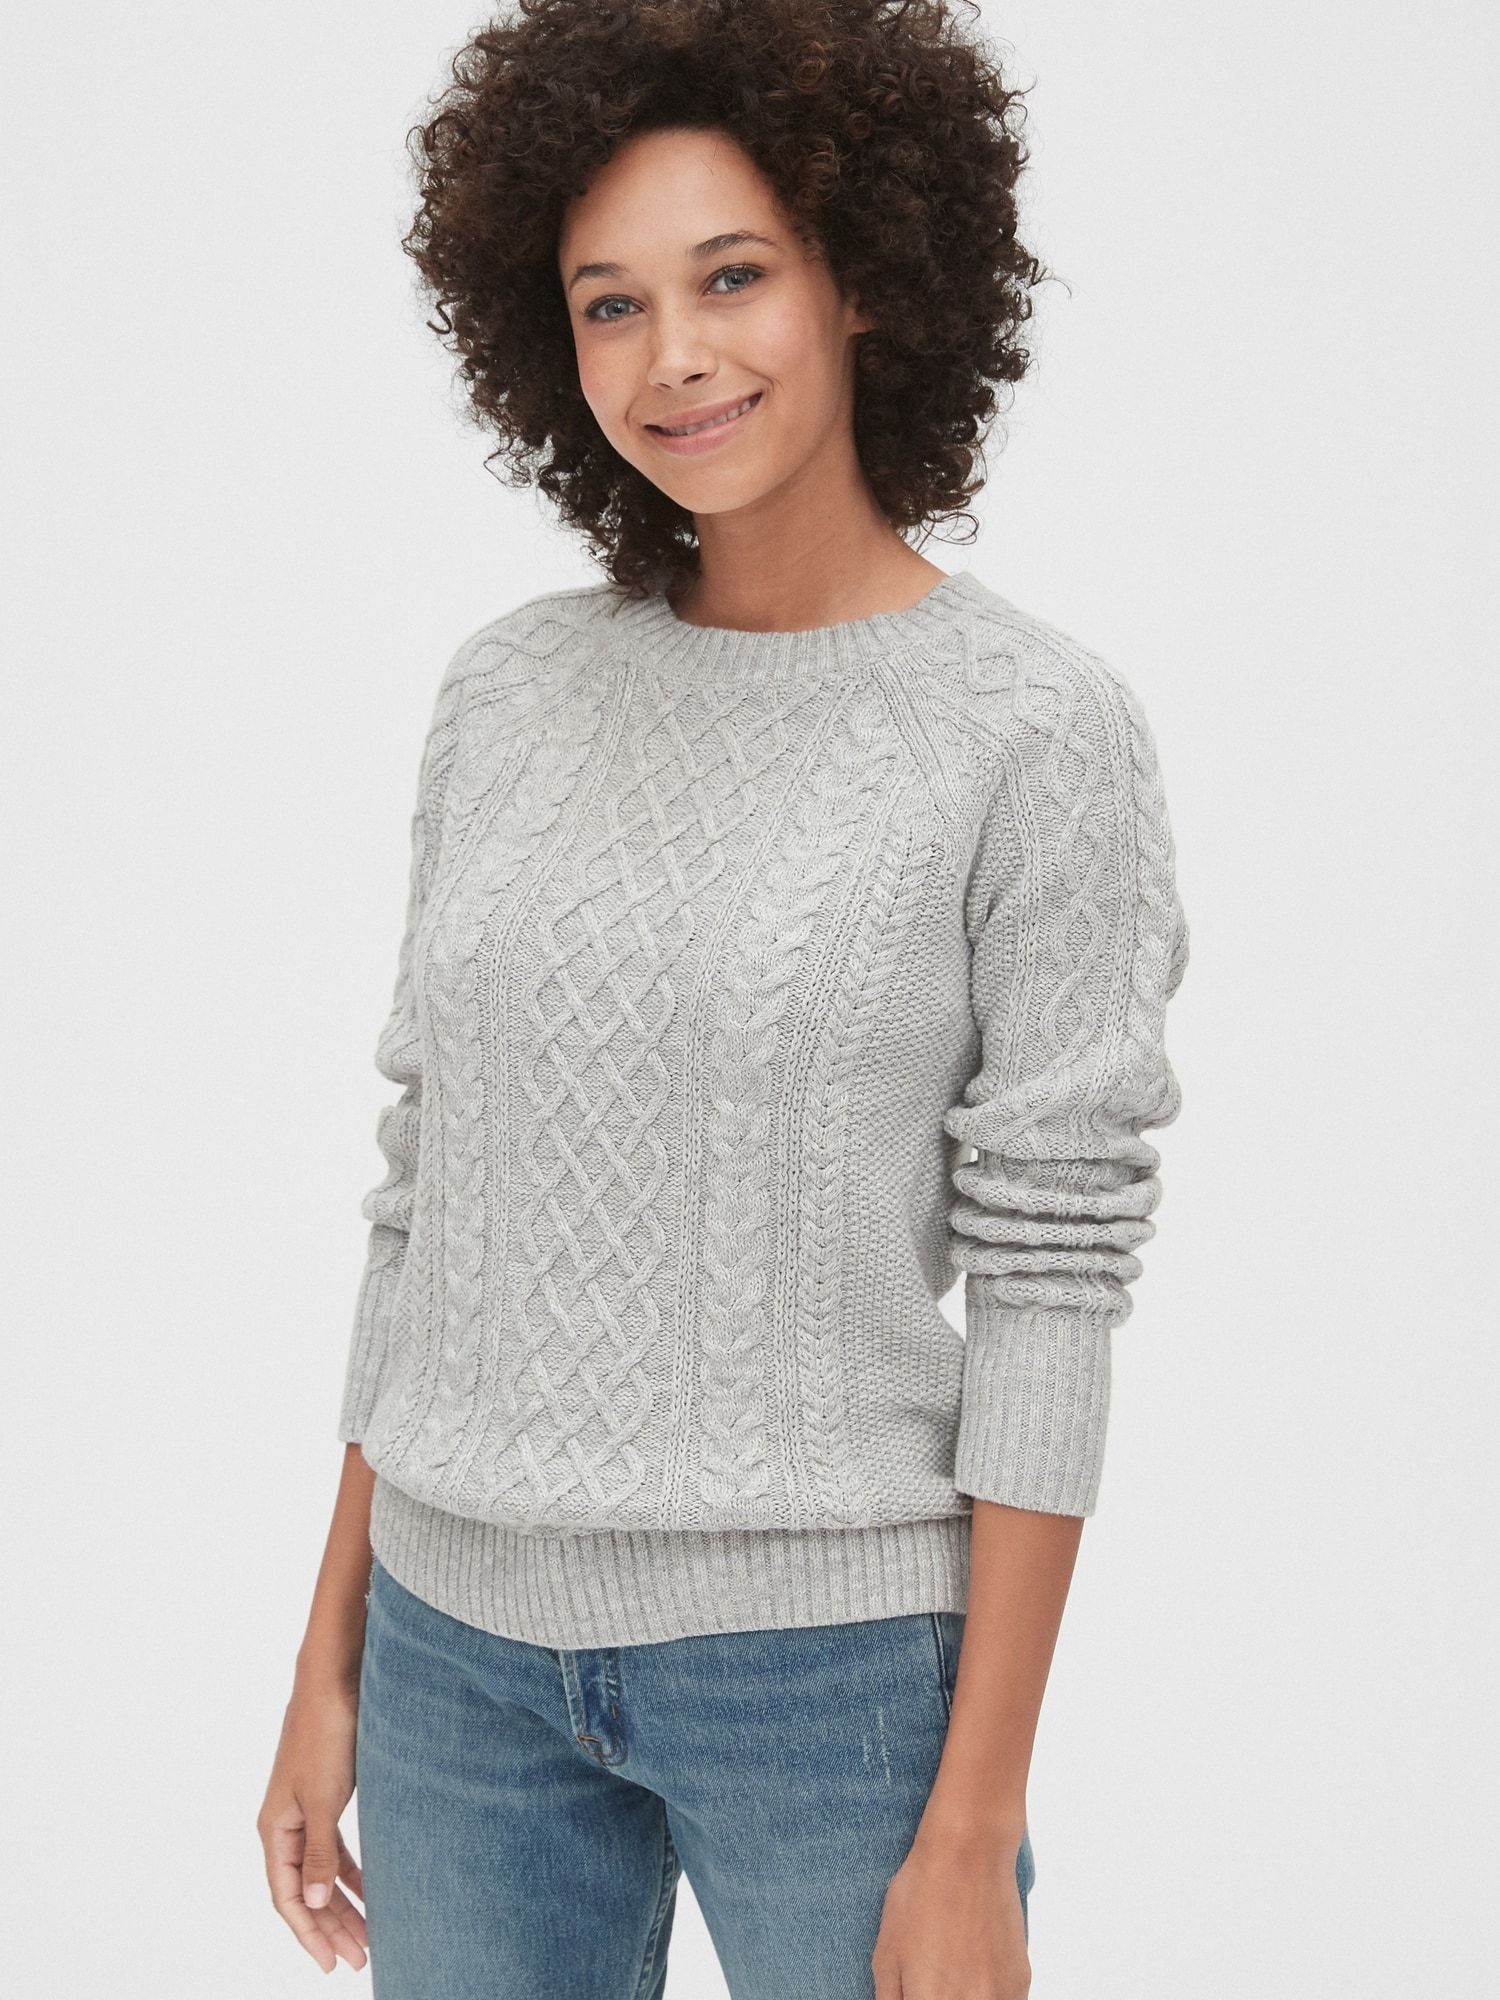 Cable Knit Crewneck Sweater Gap Sweaters For Women Sweaters Crew Neck Sweater [ 2000 x 1500 Pixel ]